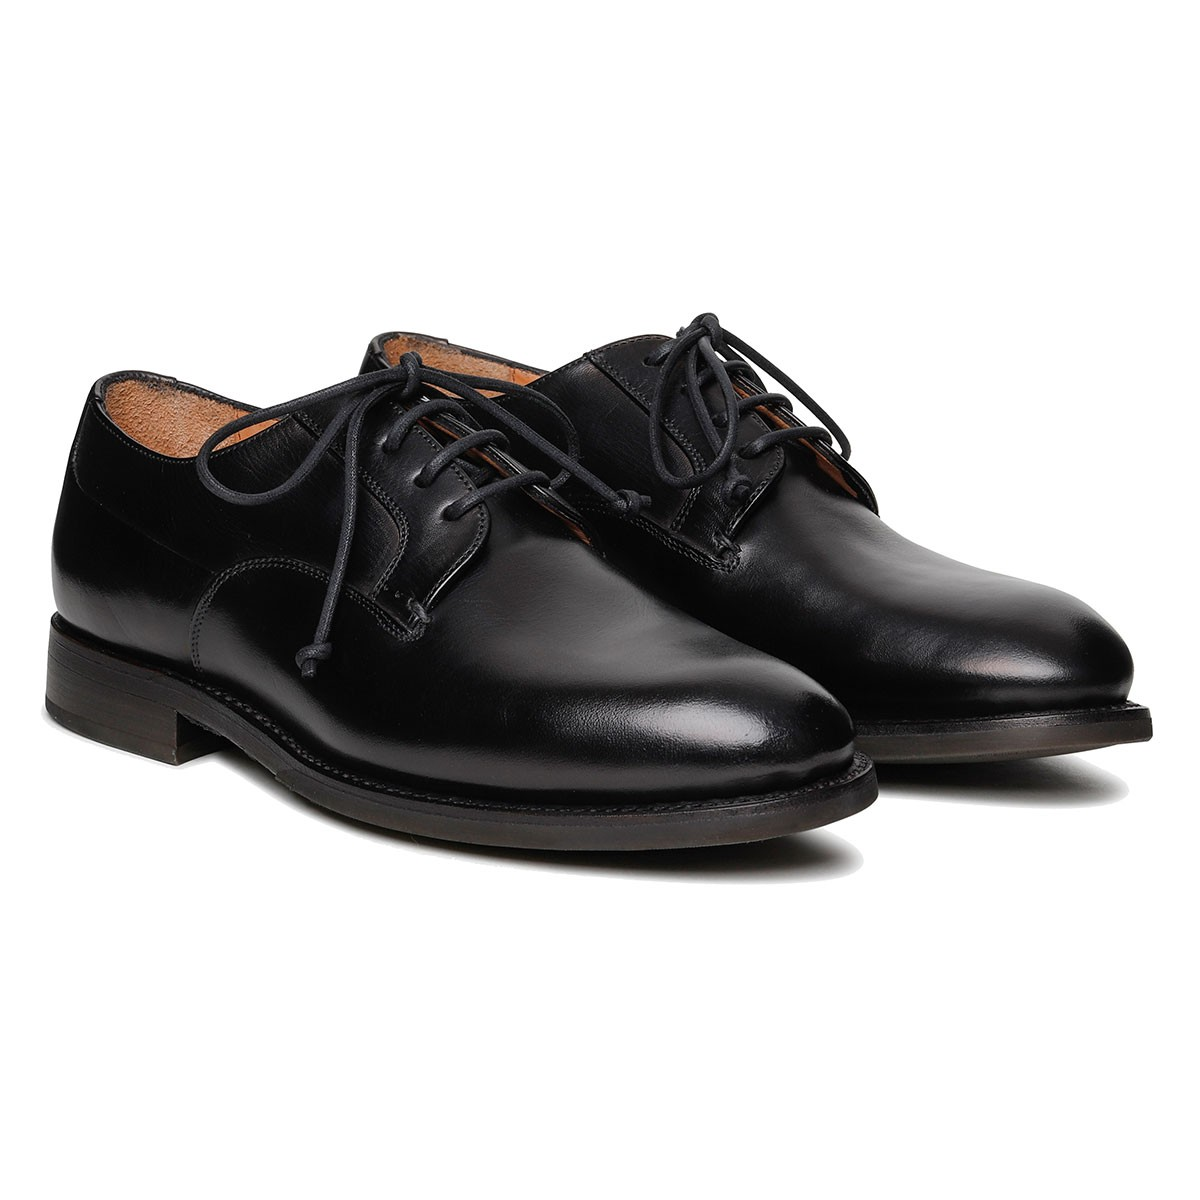 Firenze black leather Derby shoes